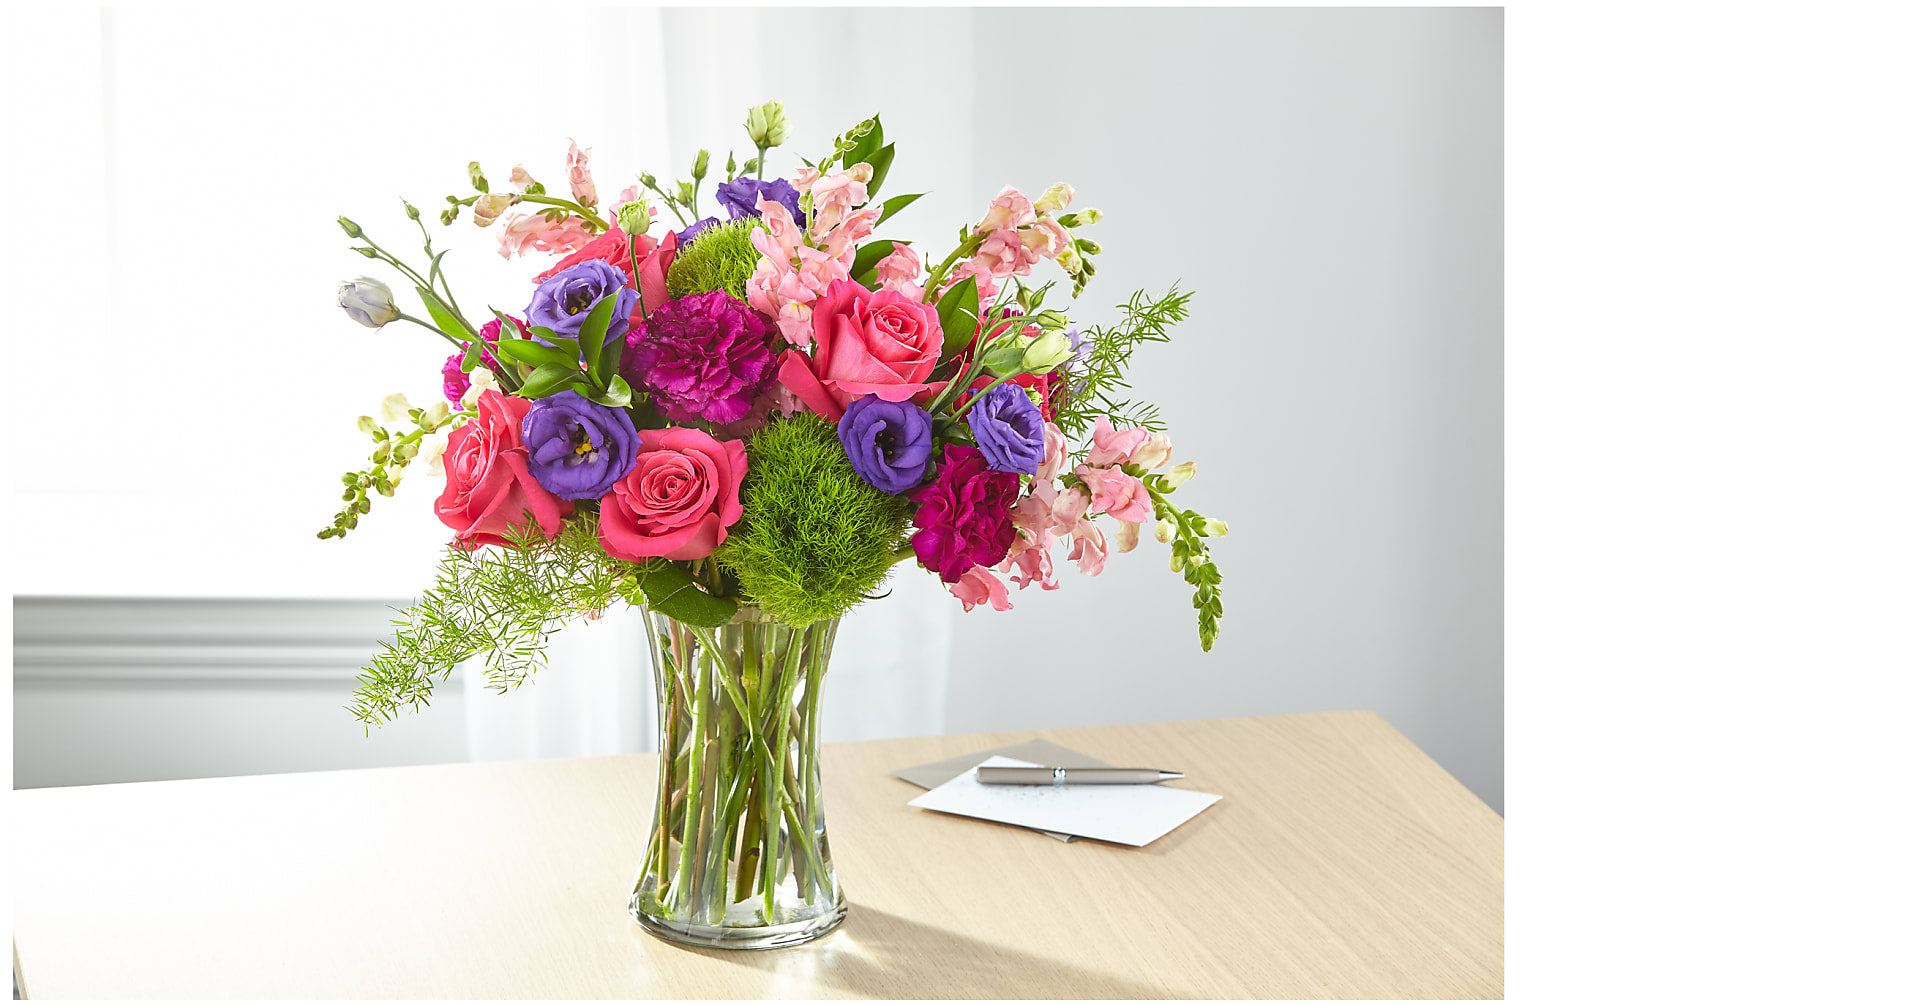 Charm & Comfort Bouquet - Image 1 Of 2